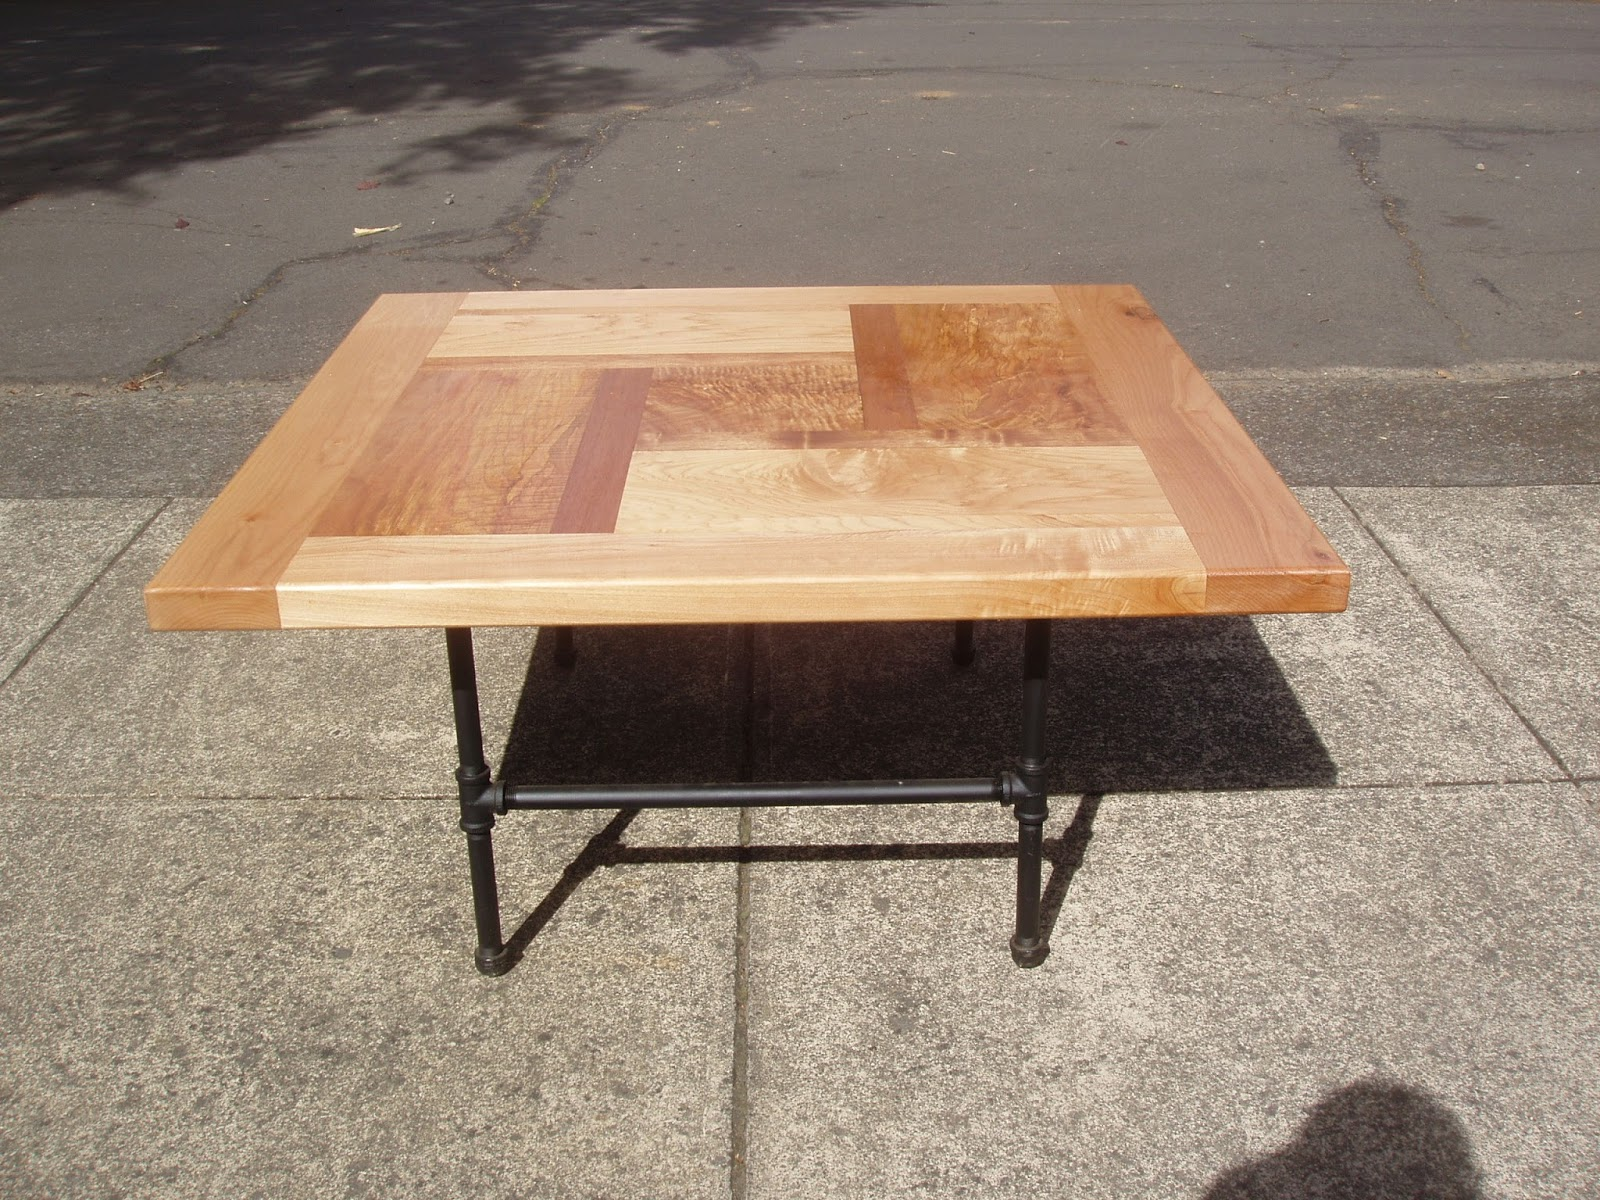 driftedge woodworking pinwheel design coffee table in maple and